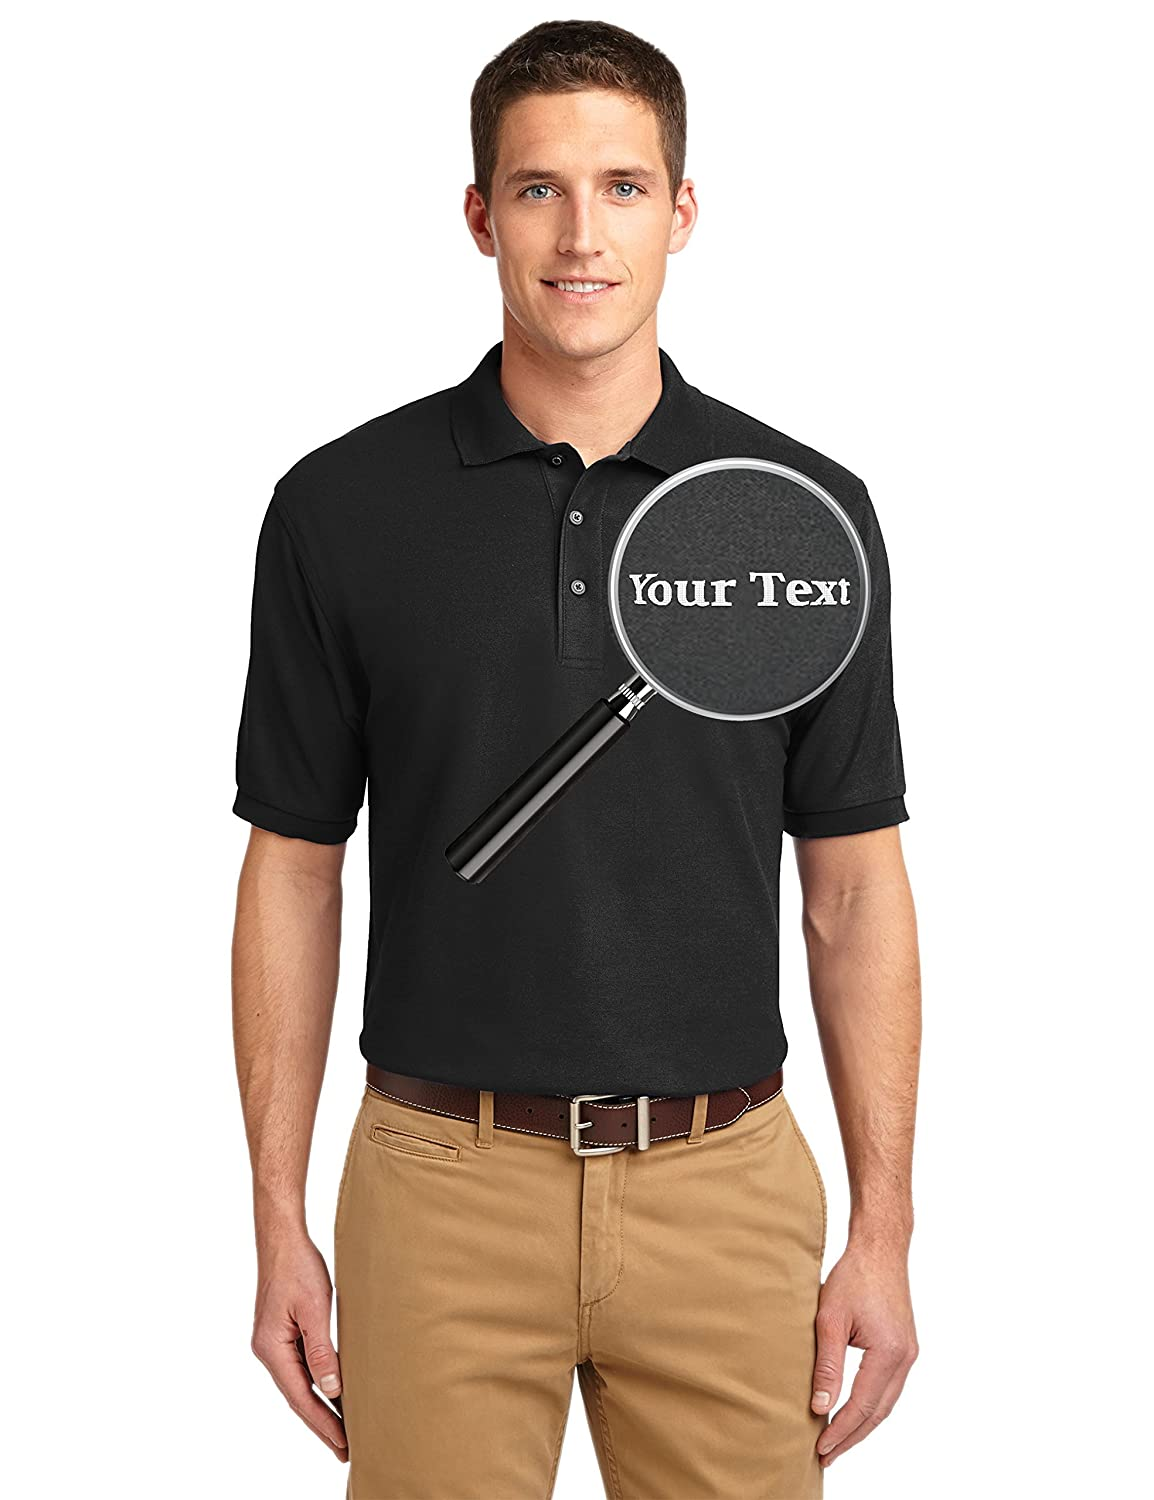 Amazon Custom Embroidered Shirts Add Your Text Personalized